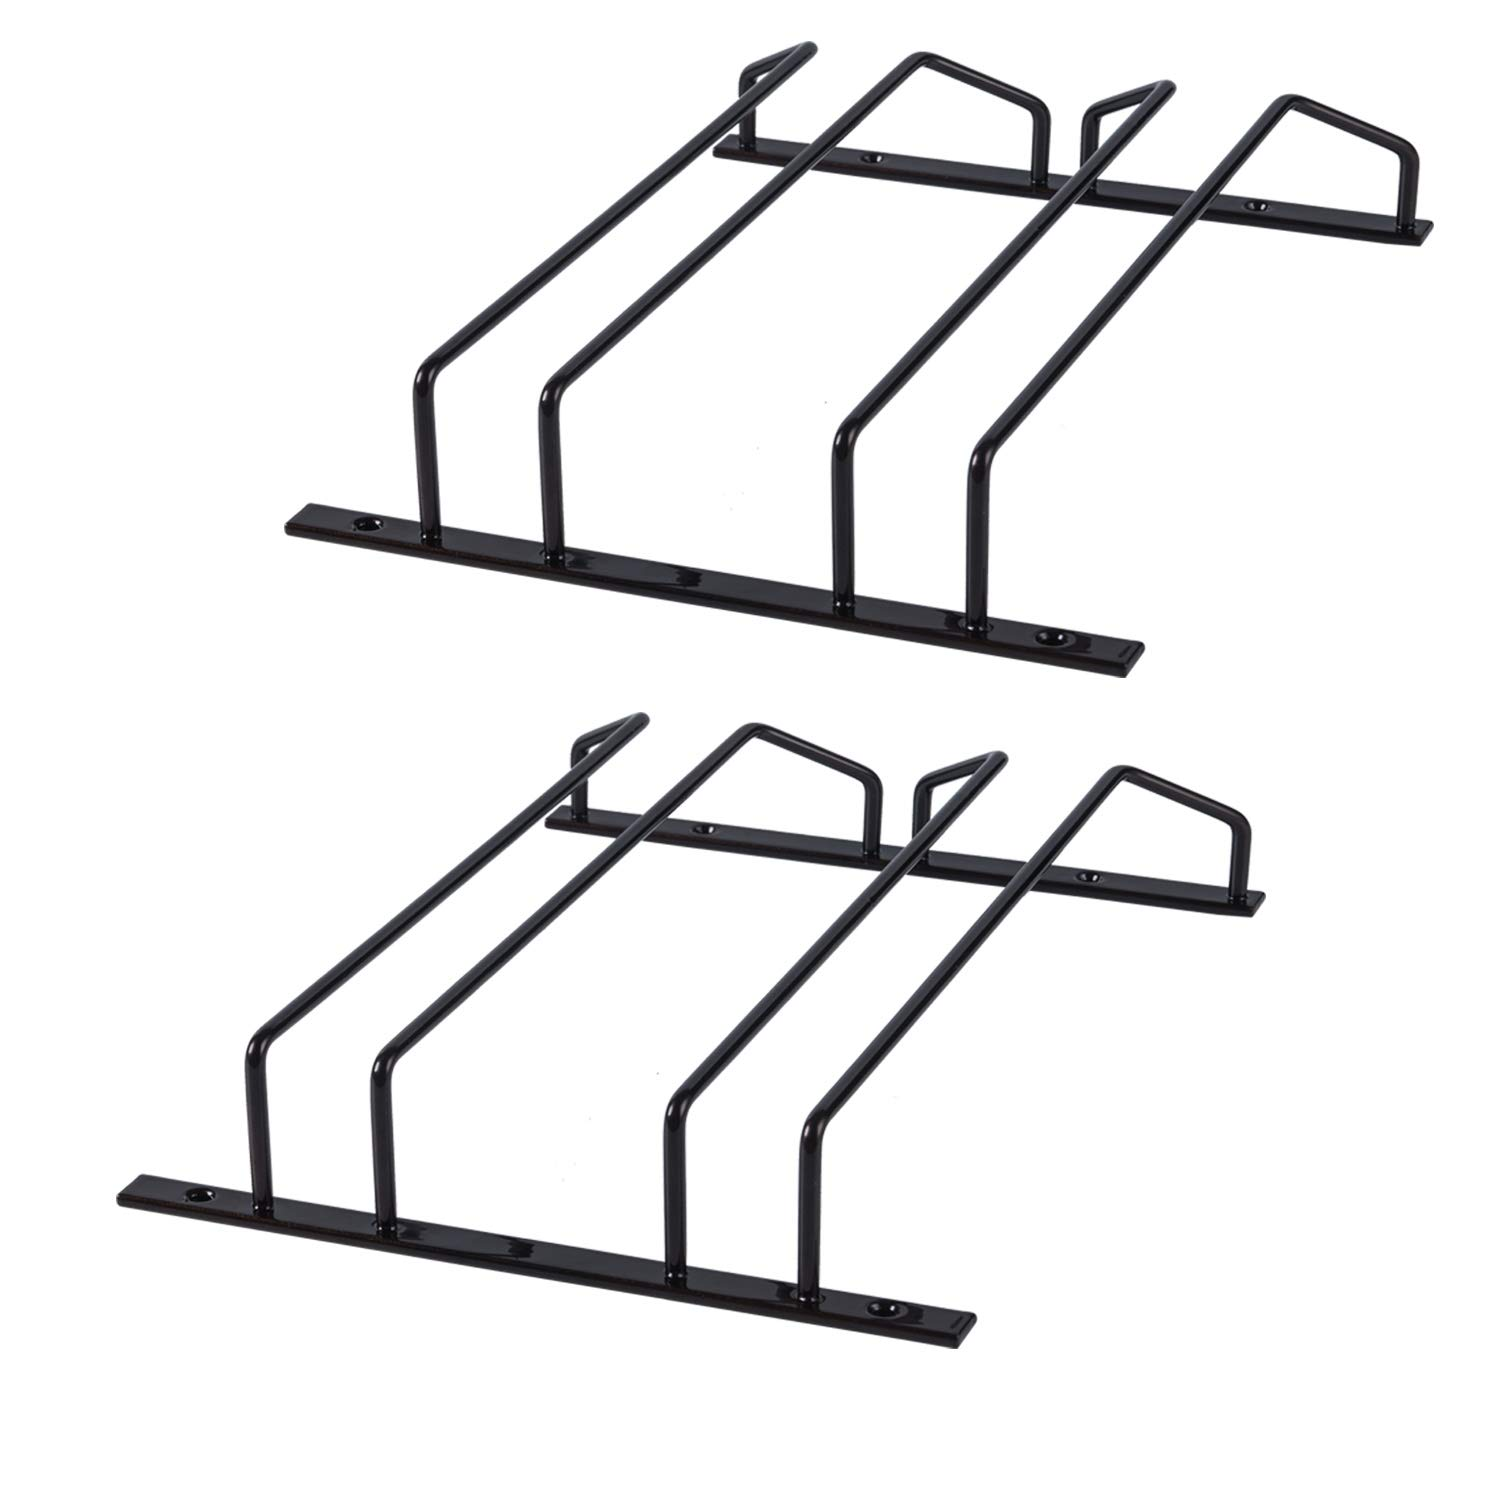 TY Storage Under Cabinet Hanging Stemware Rack, 4 Rows Wine Glass Hanger Rack Hold up to 12 Glasses in Double Layer Powder Coating for Bar, Countertop Kitchen Storage, Set of 2, Bronze